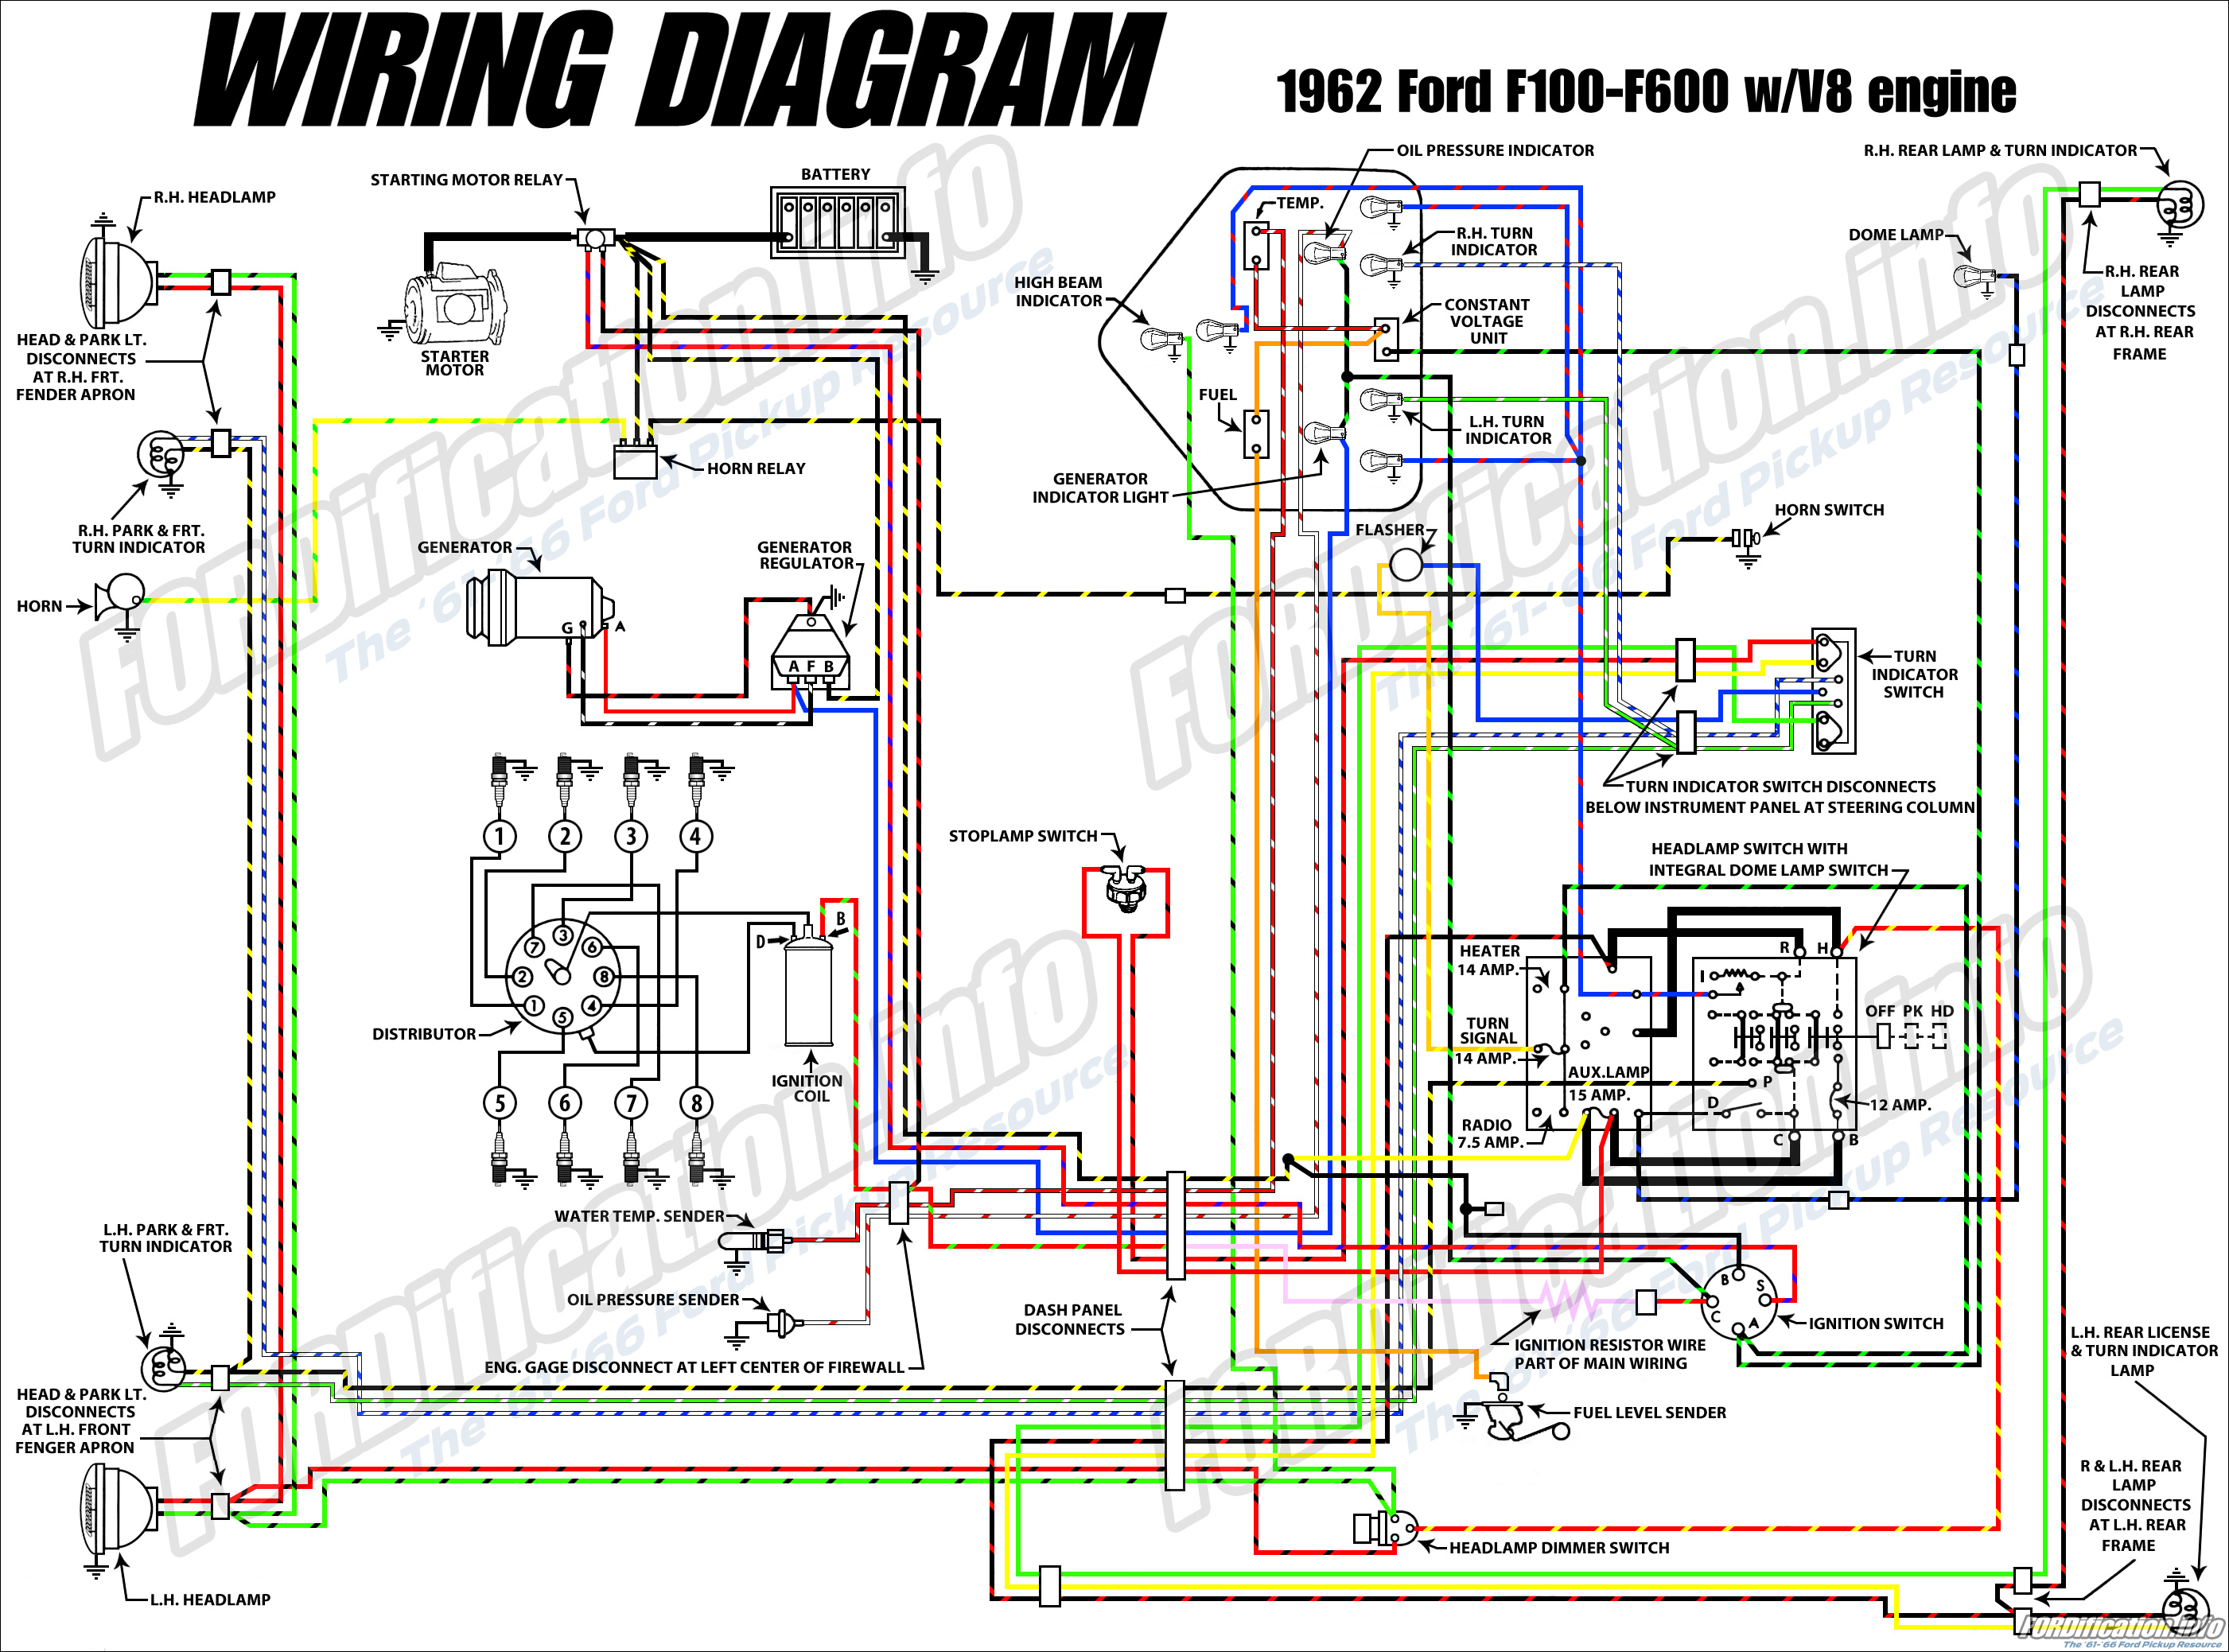 DIAGRAM] Wiring Diagram 1962 Ford Truck FULL Version HD Quality Ford Truck  - THROATDIAGRAM.SAINTMIHIEL-TOURISME.FRSaintmihiel-tourisme.fr